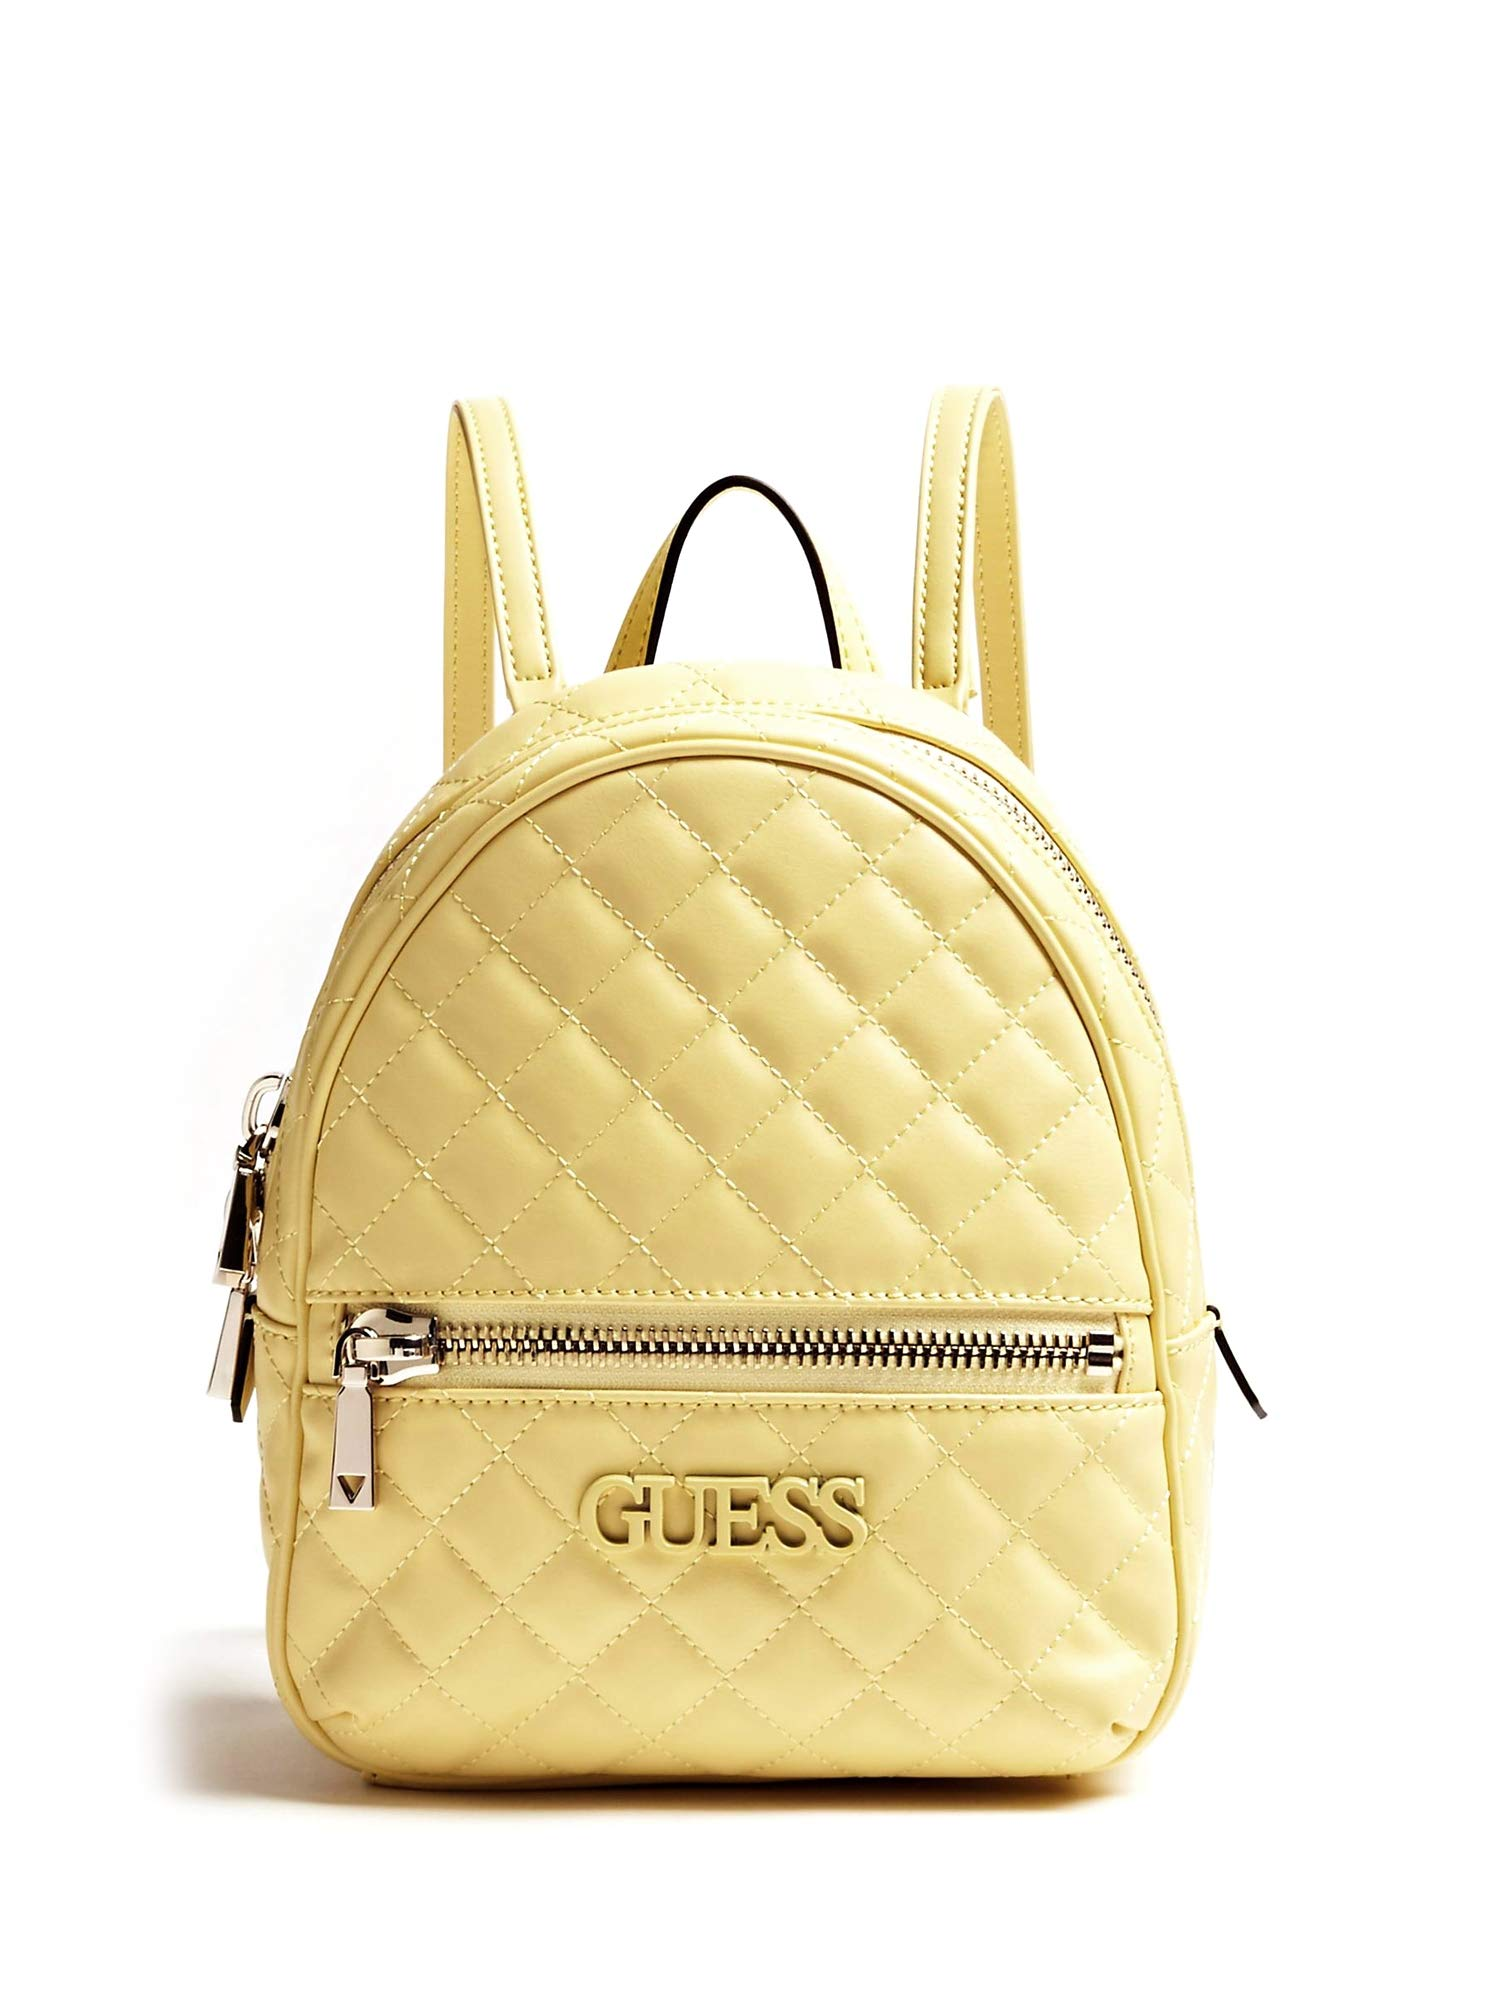 71HtLPLdnZL - Guess Elliana Backpack - Mochilas Mujer